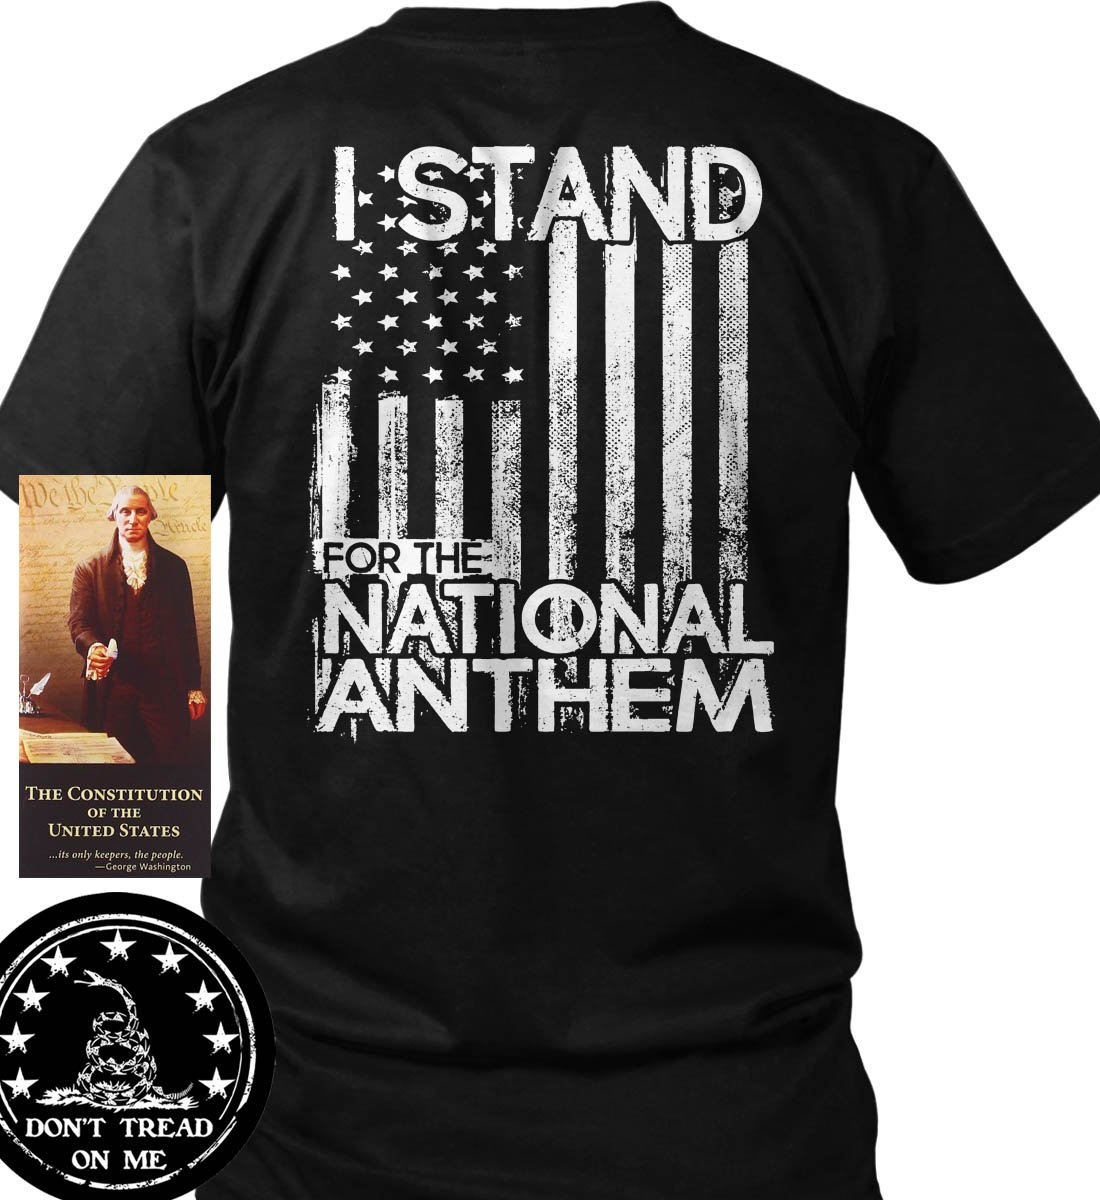 Sons Of Libery I Stand For The National Anthem. T-Shirt. Made In USA